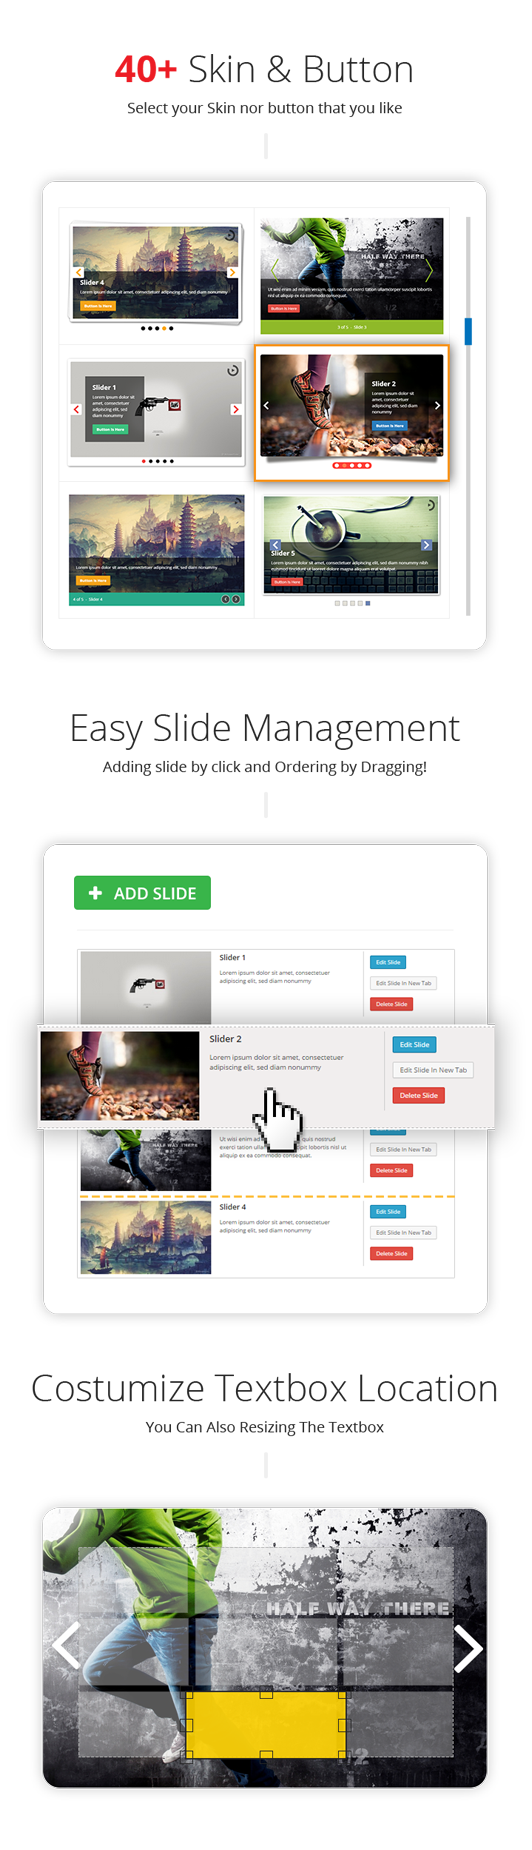 fluid-responsive-slideshow screenshot 1